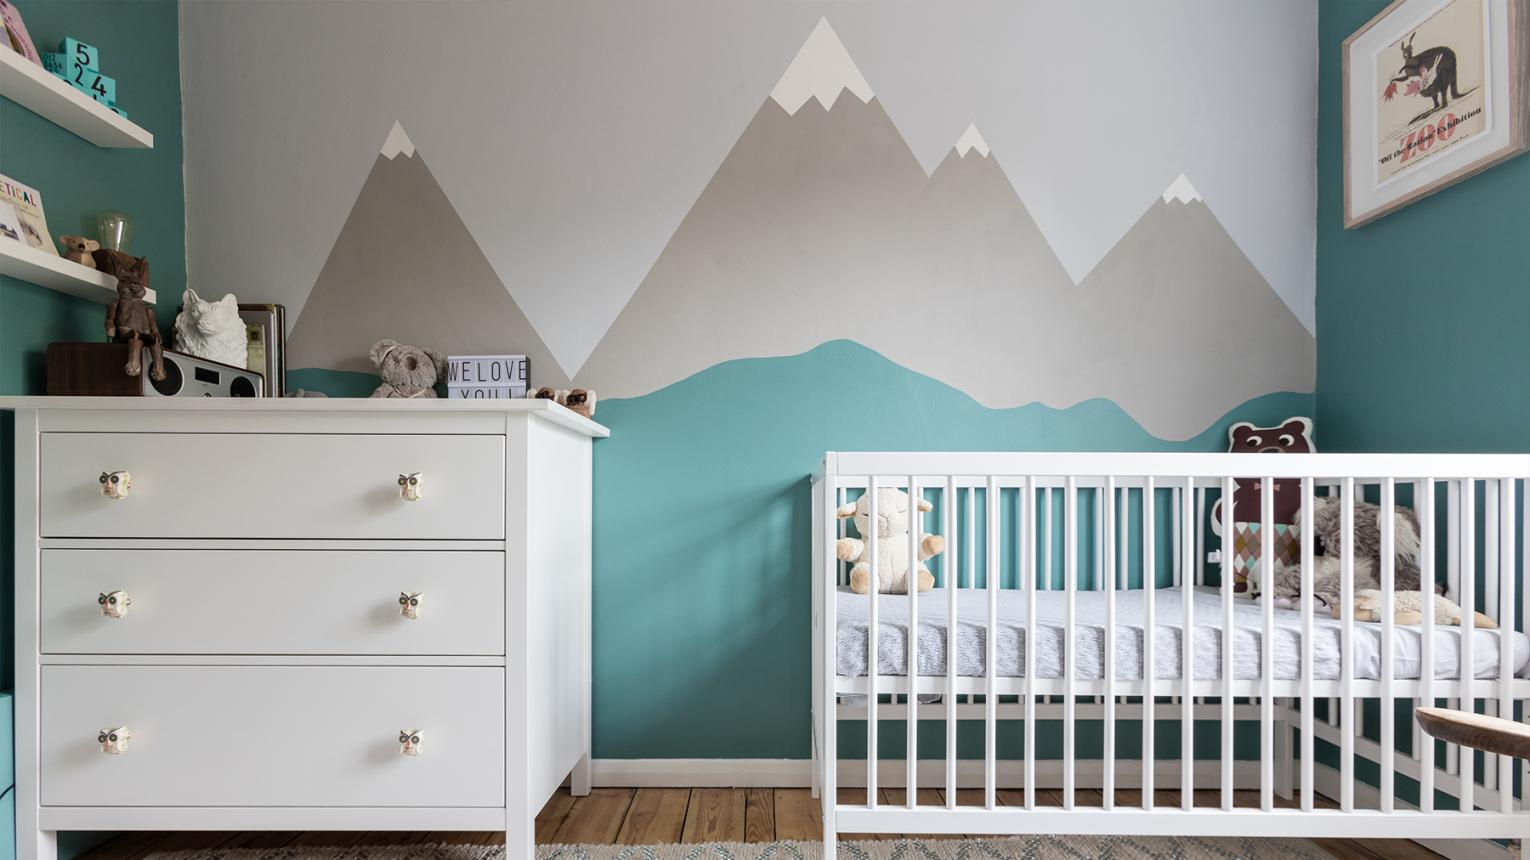 Child's nursery painted in blue throughout apart from one feature wall with a mountain mural.